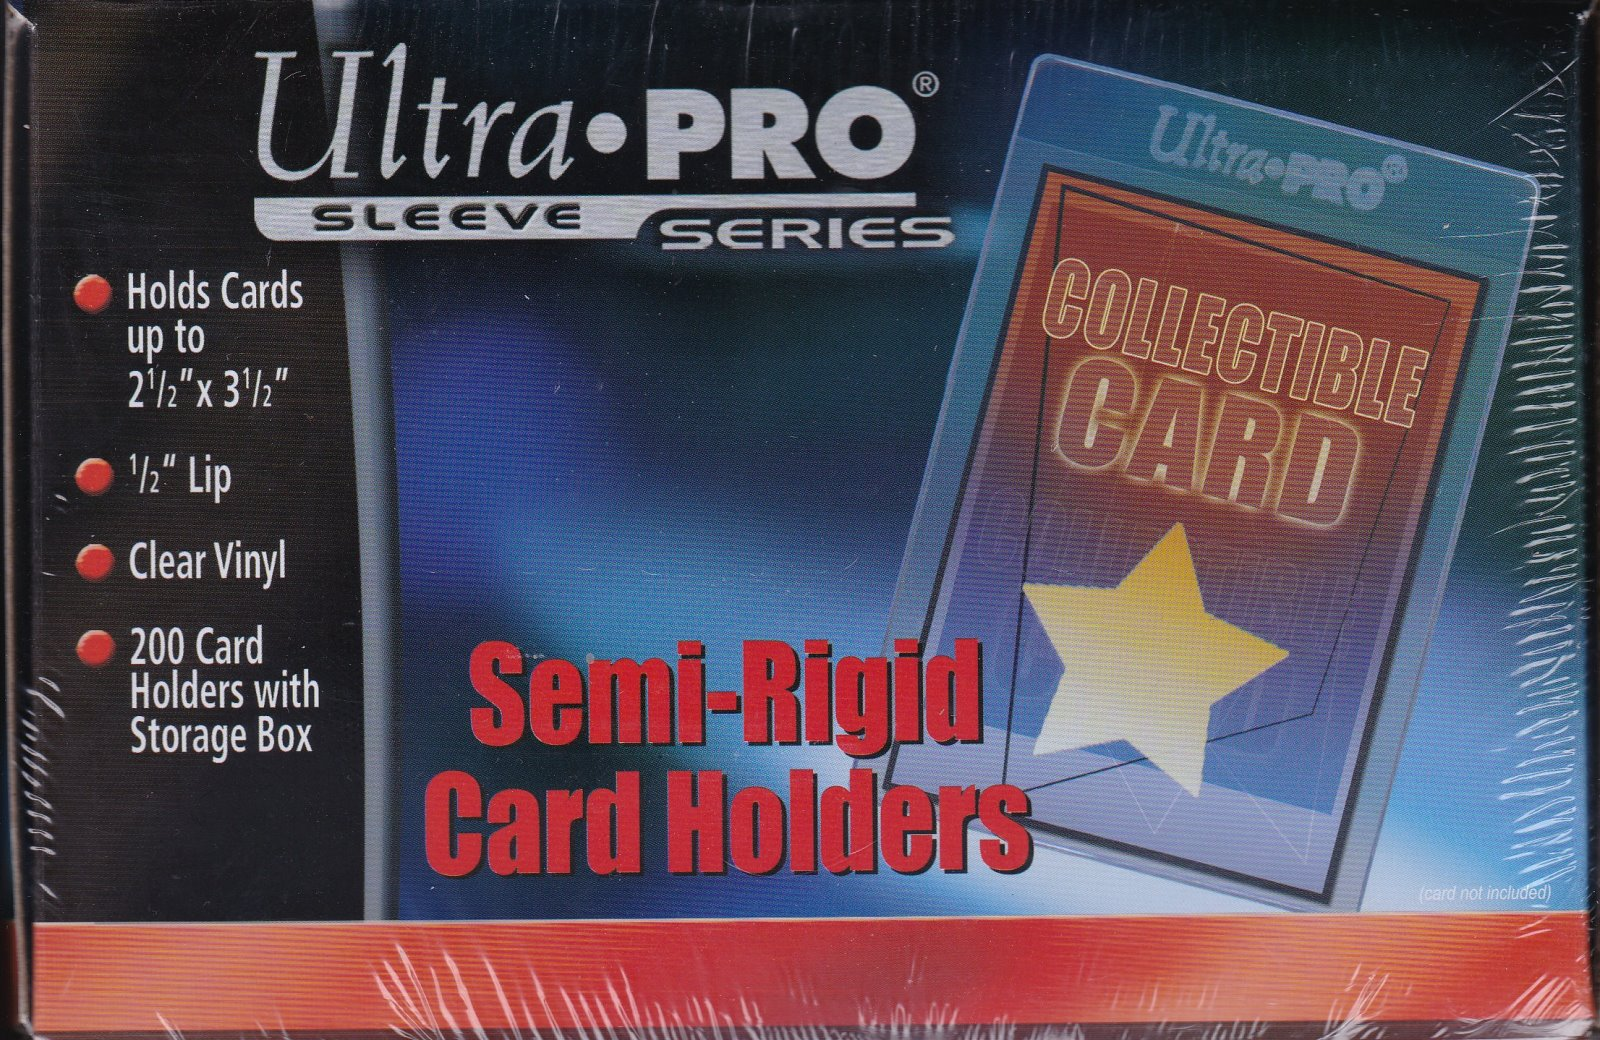 Ultra Pro Semi-Rigid Card Holders